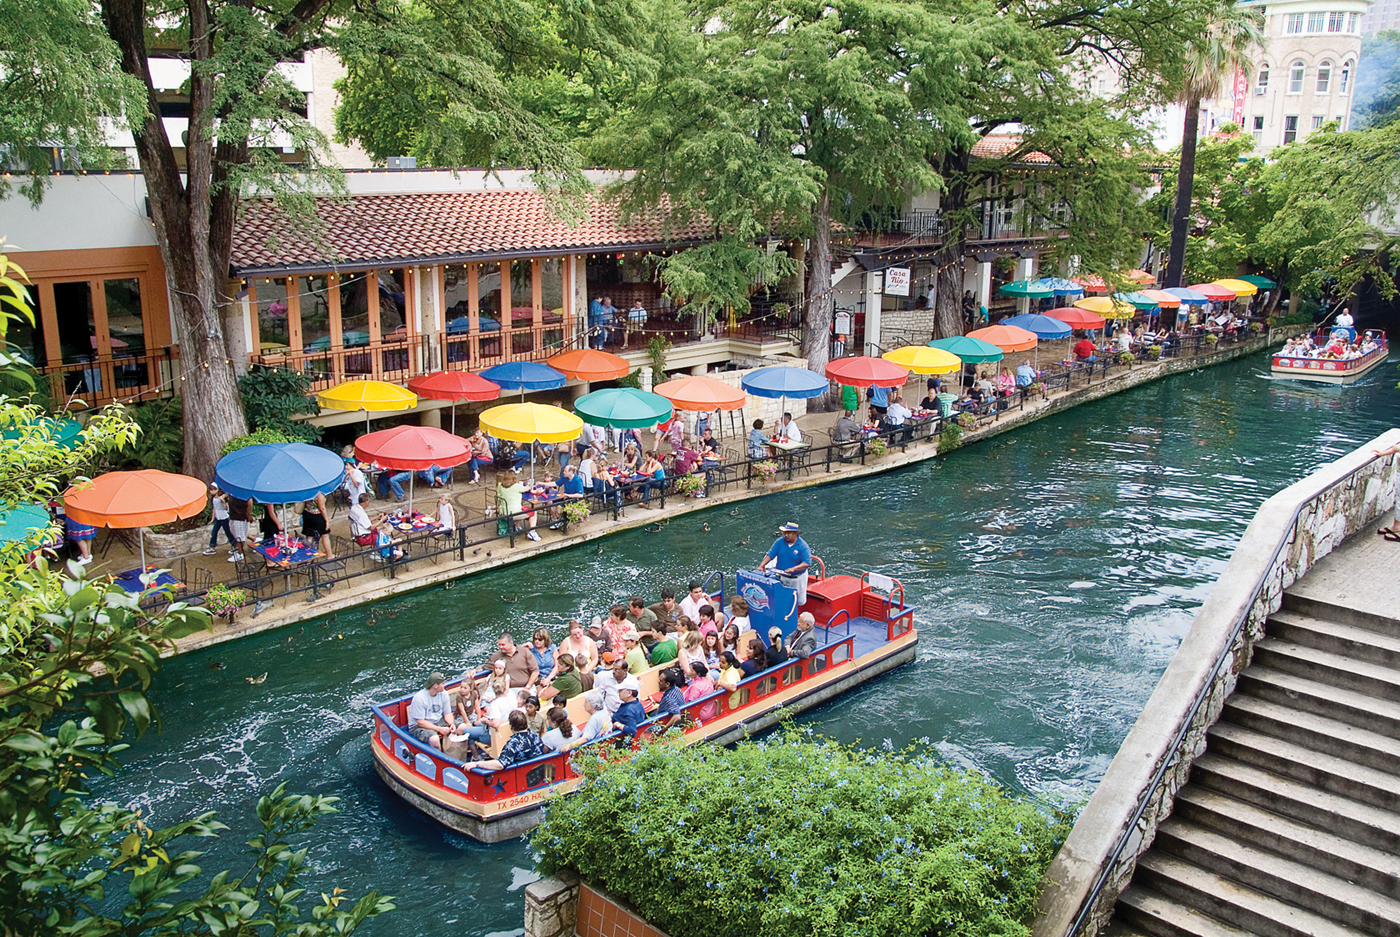 Seattle Djc Com Local Business News And Data Weekend San Antonio Expands Size Of River Walk